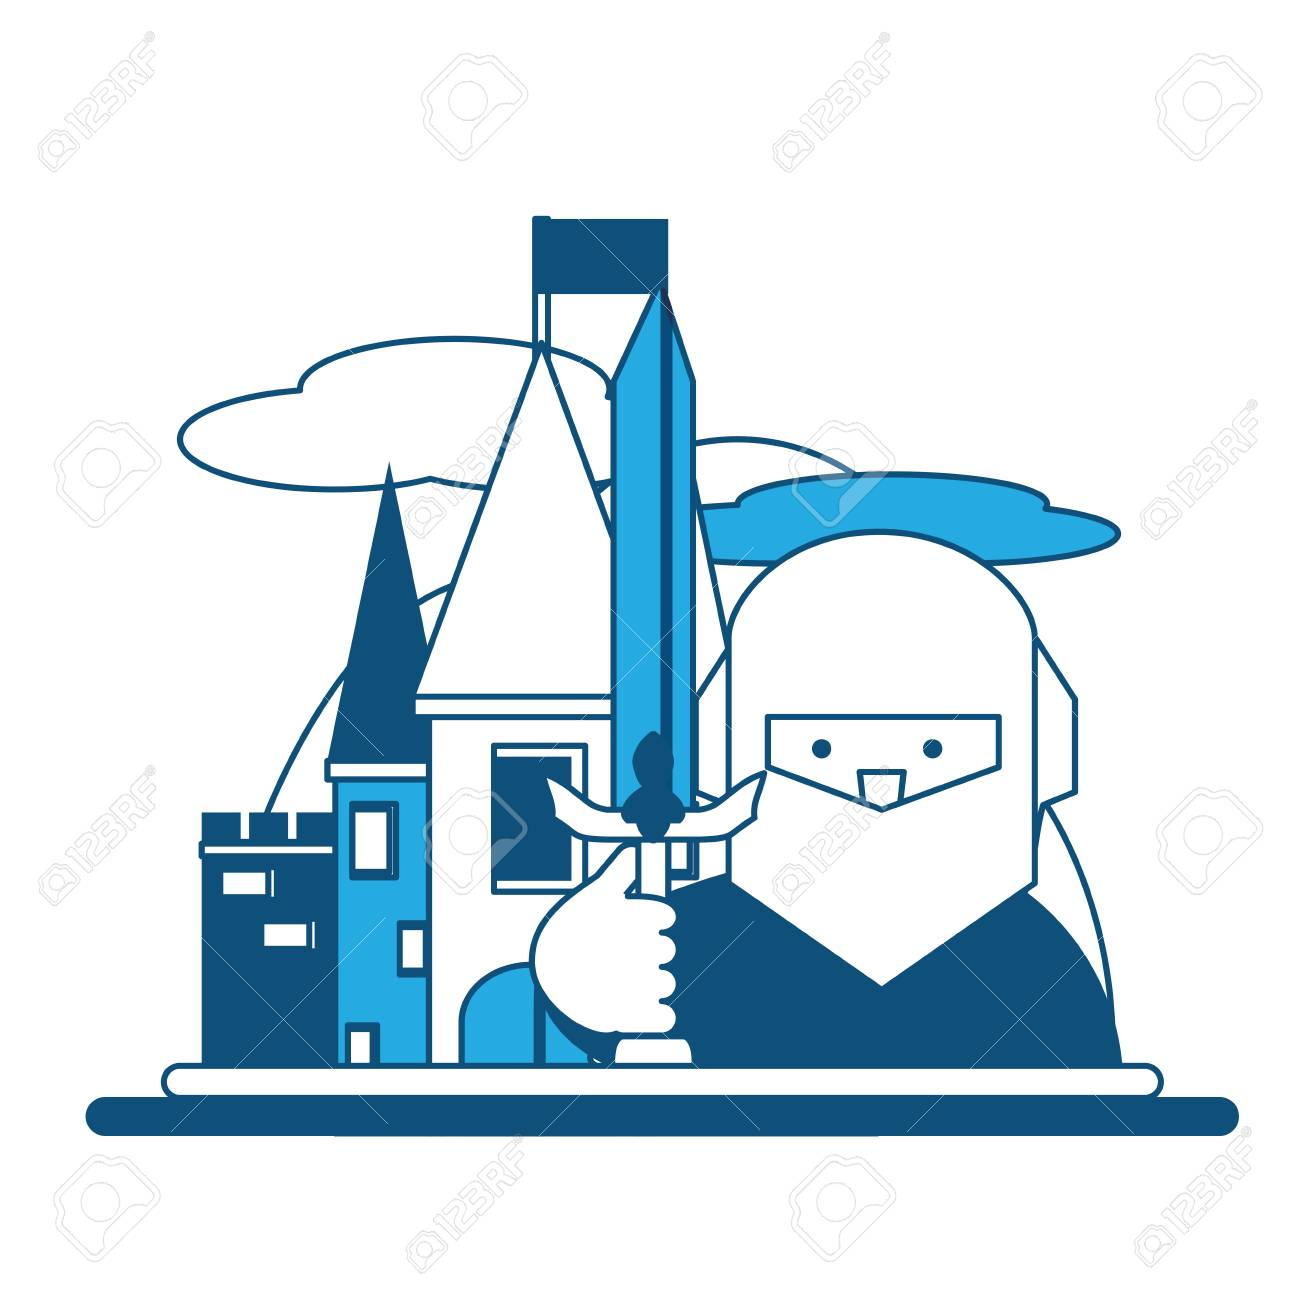 Medieval Citadel With Knight Icon Royalty Free Cliparts, Vectors ...